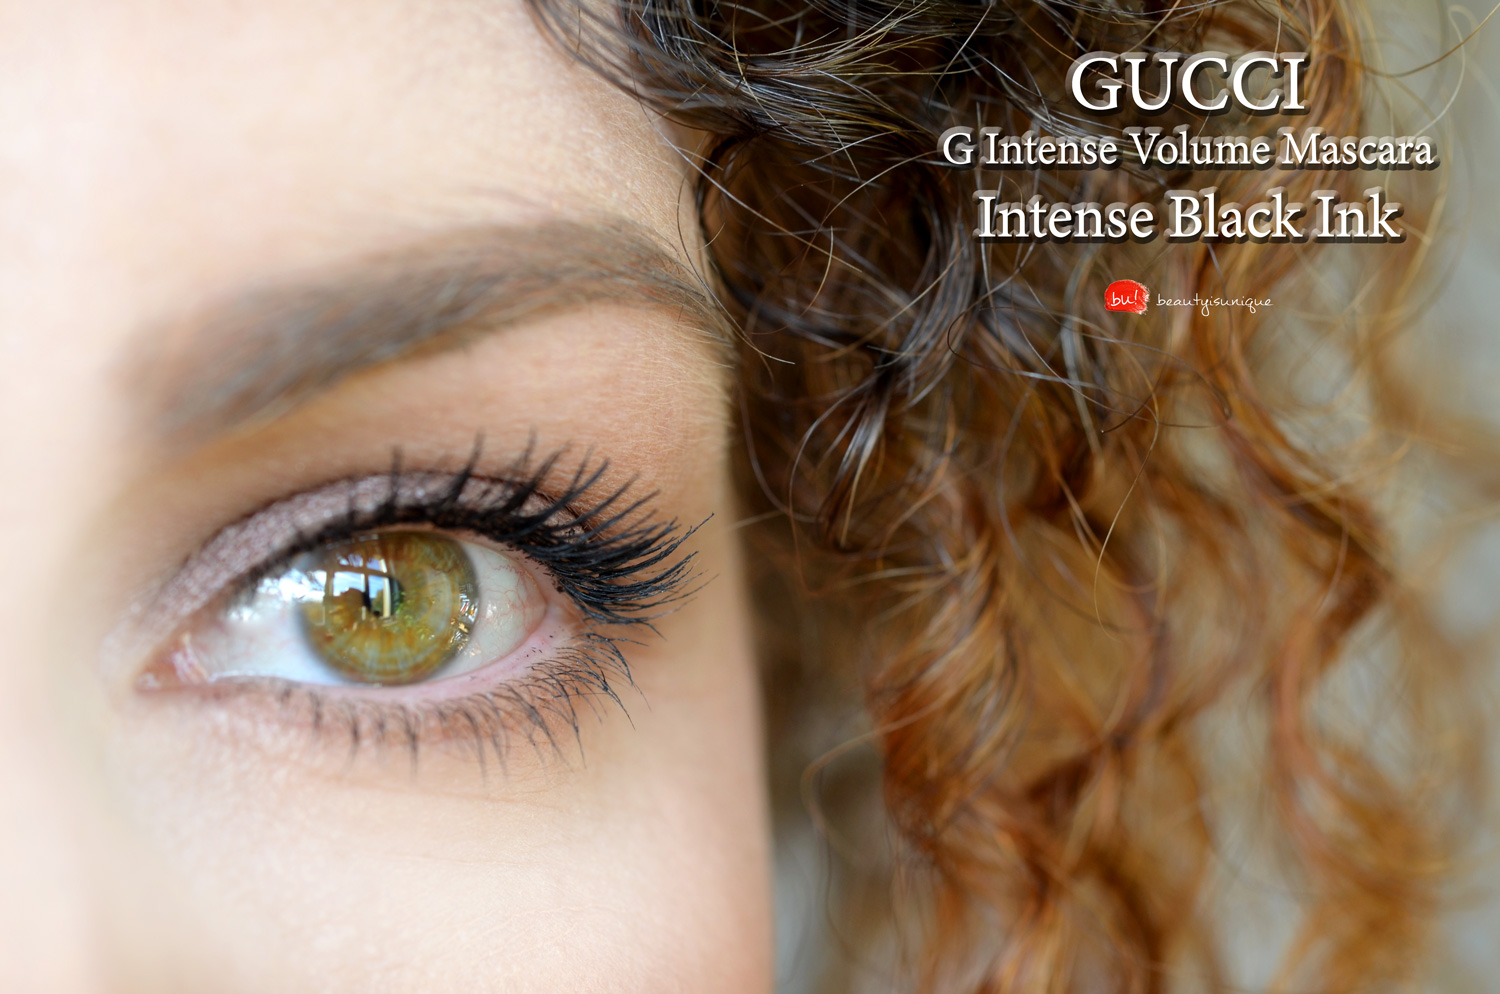 Gucci-intense-volume-mascara-black-ink-swatches